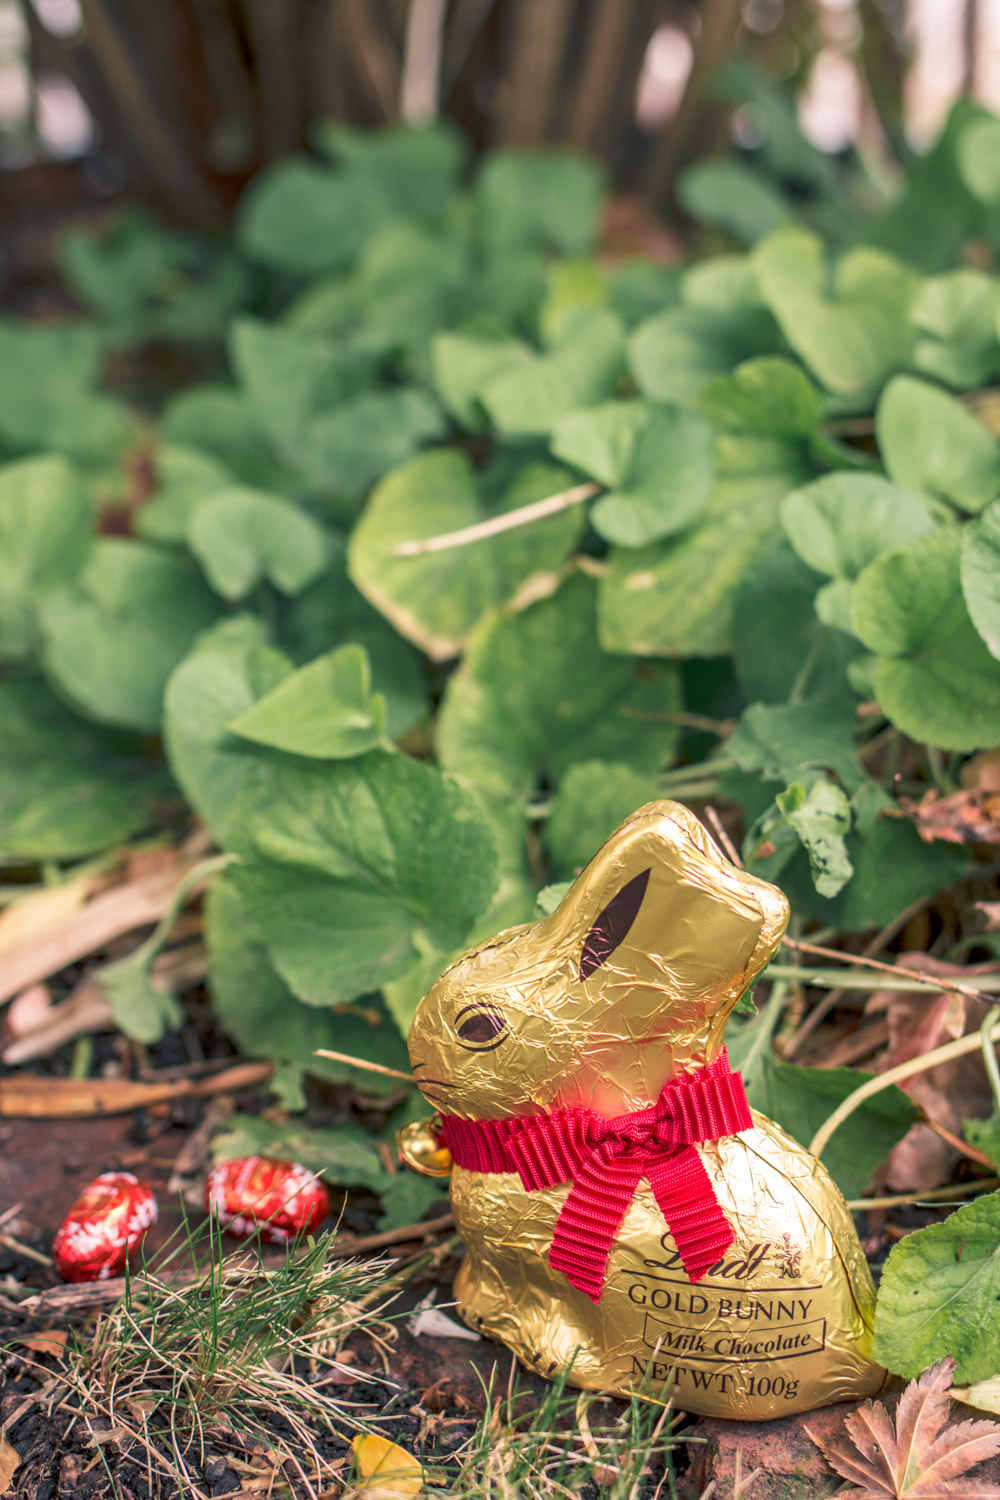 Lindt chocolates at GoldfieldGirl Autumn Easter Egg Hunt